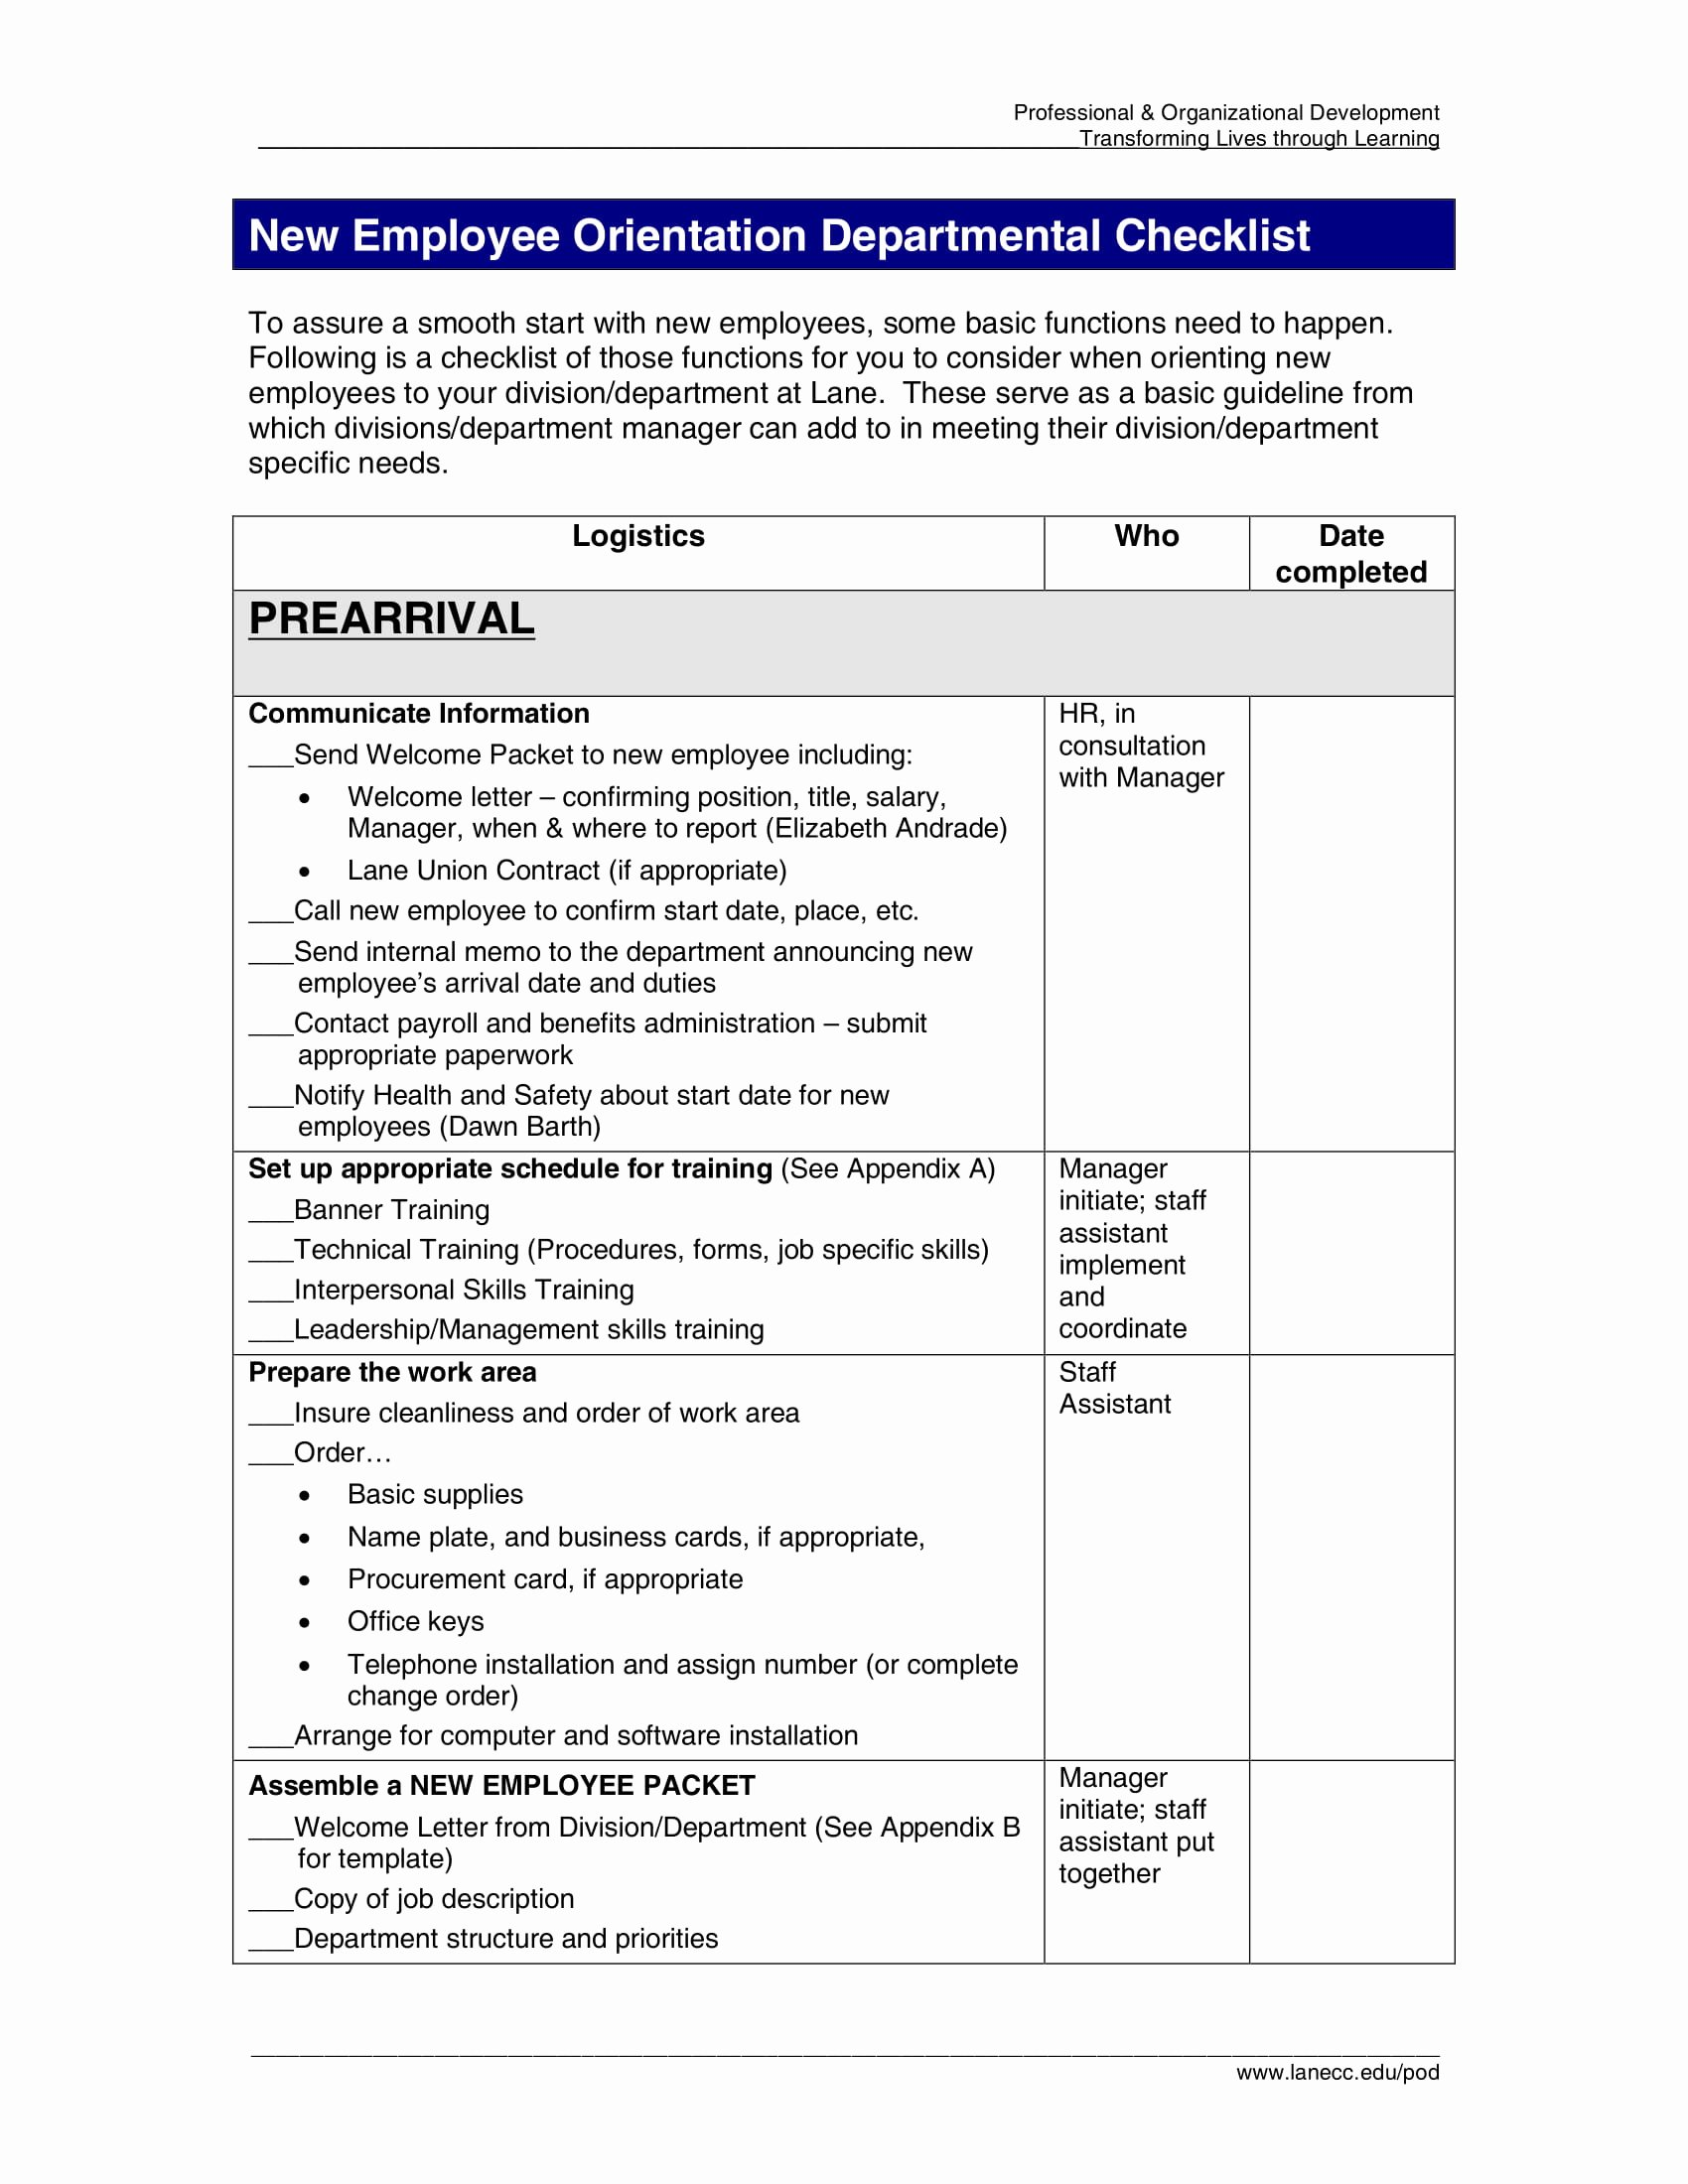 New Employee orientation Checklist Template Unique 9 New Employee orientation Checklist Examples Pdf